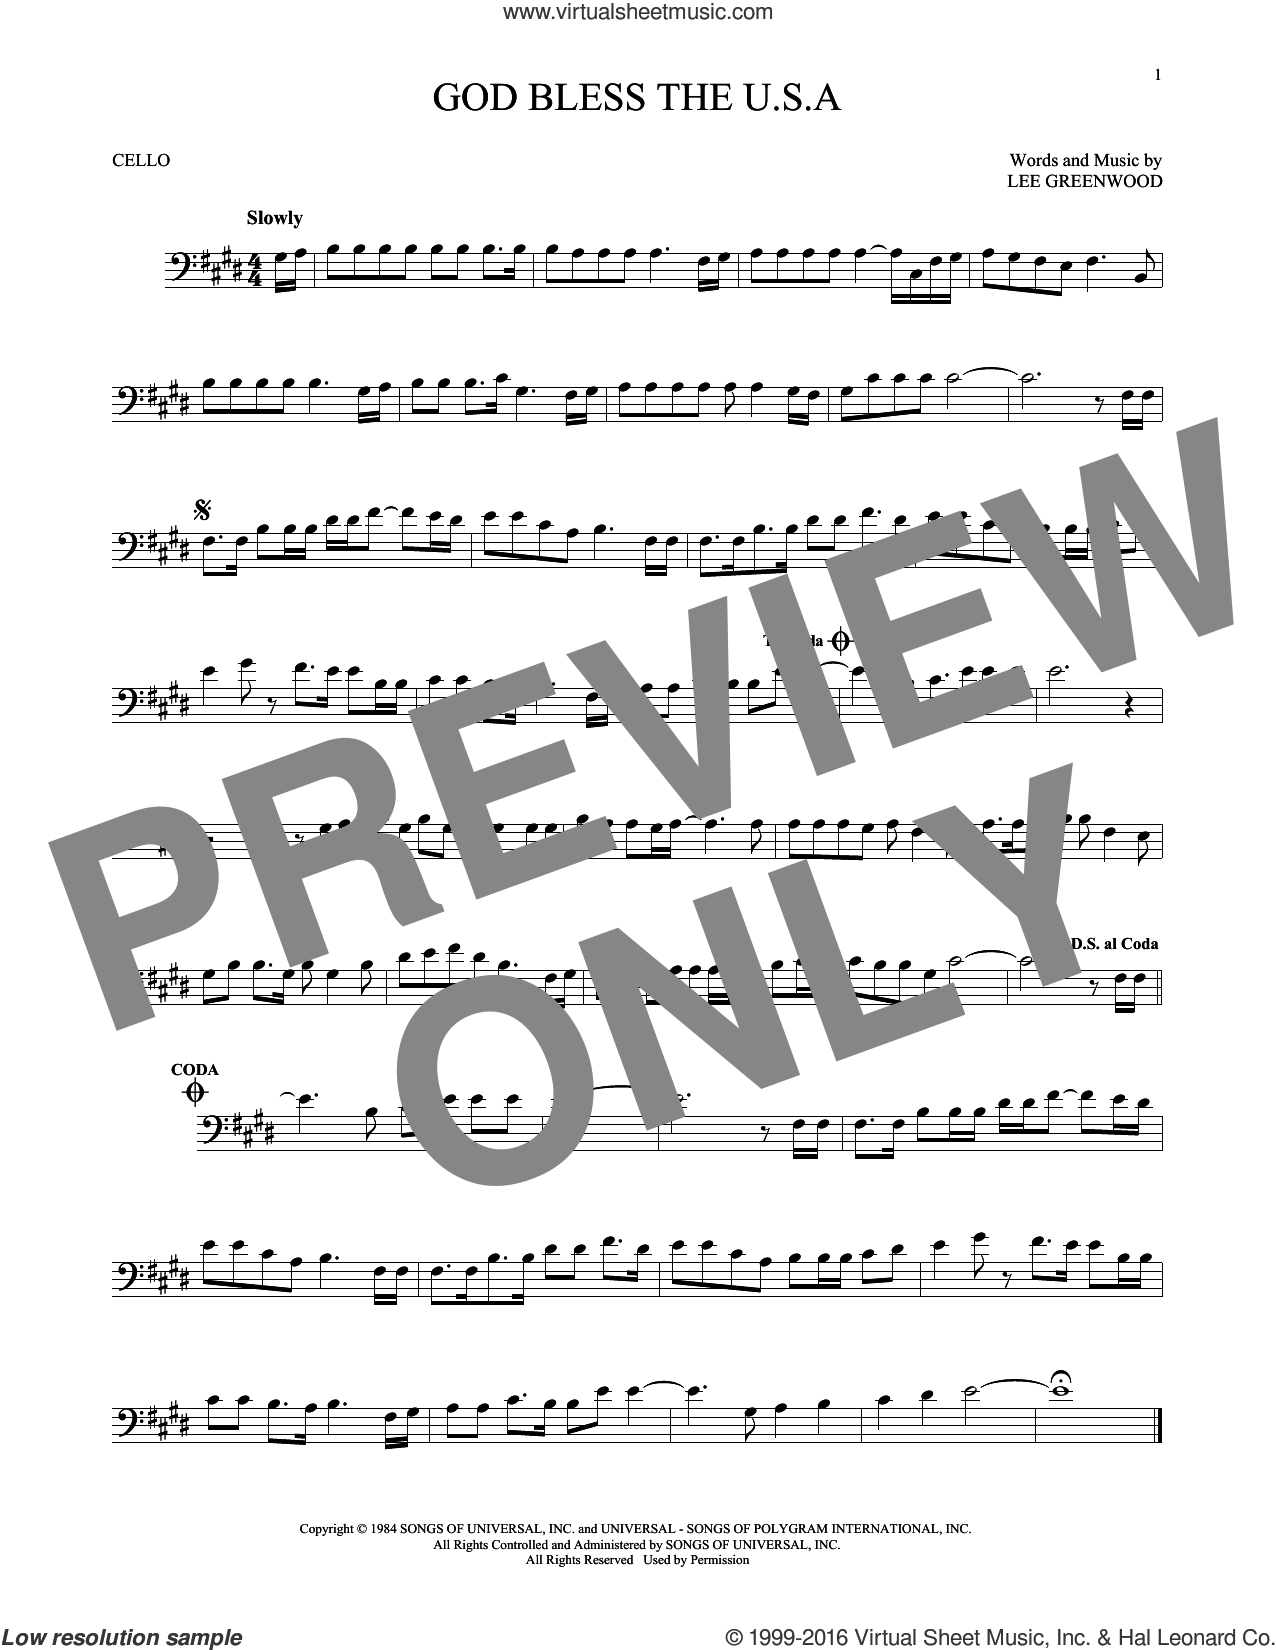 God Bless The U.S.A. sheet music for cello solo by Lee Greenwood, intermediate skill level